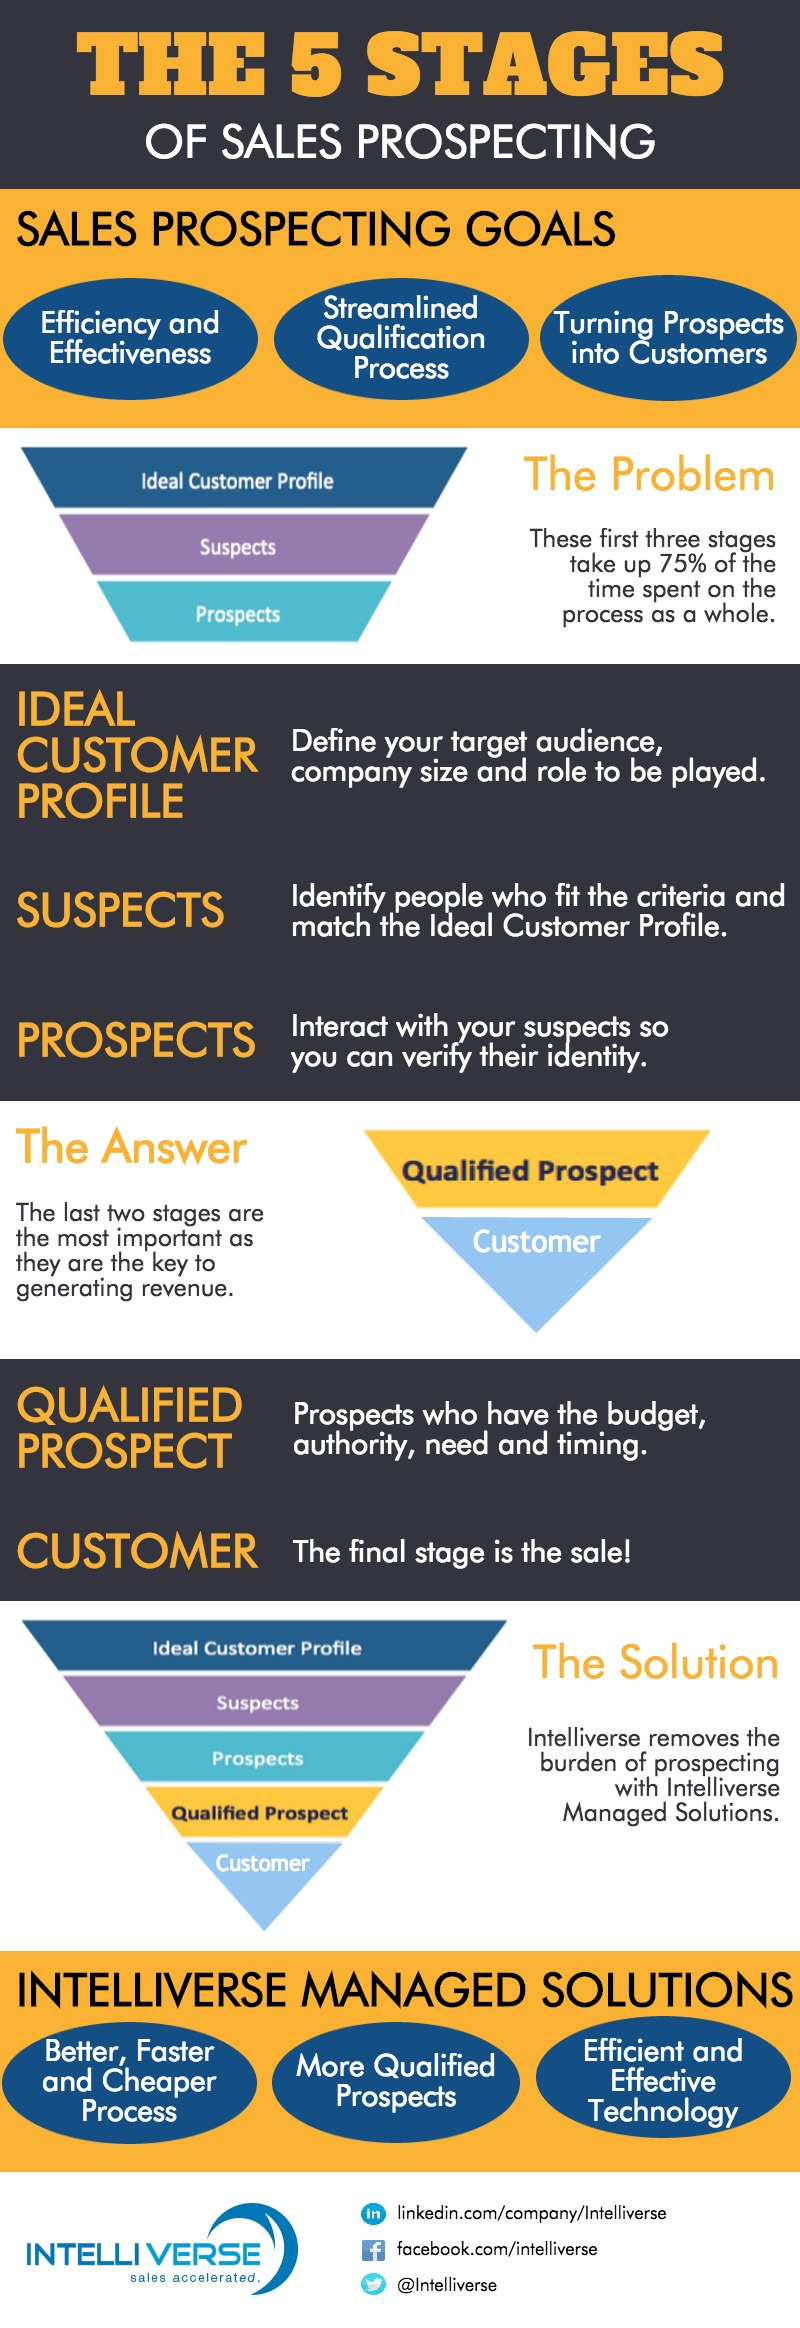 5 Stages of Sales Prospecting